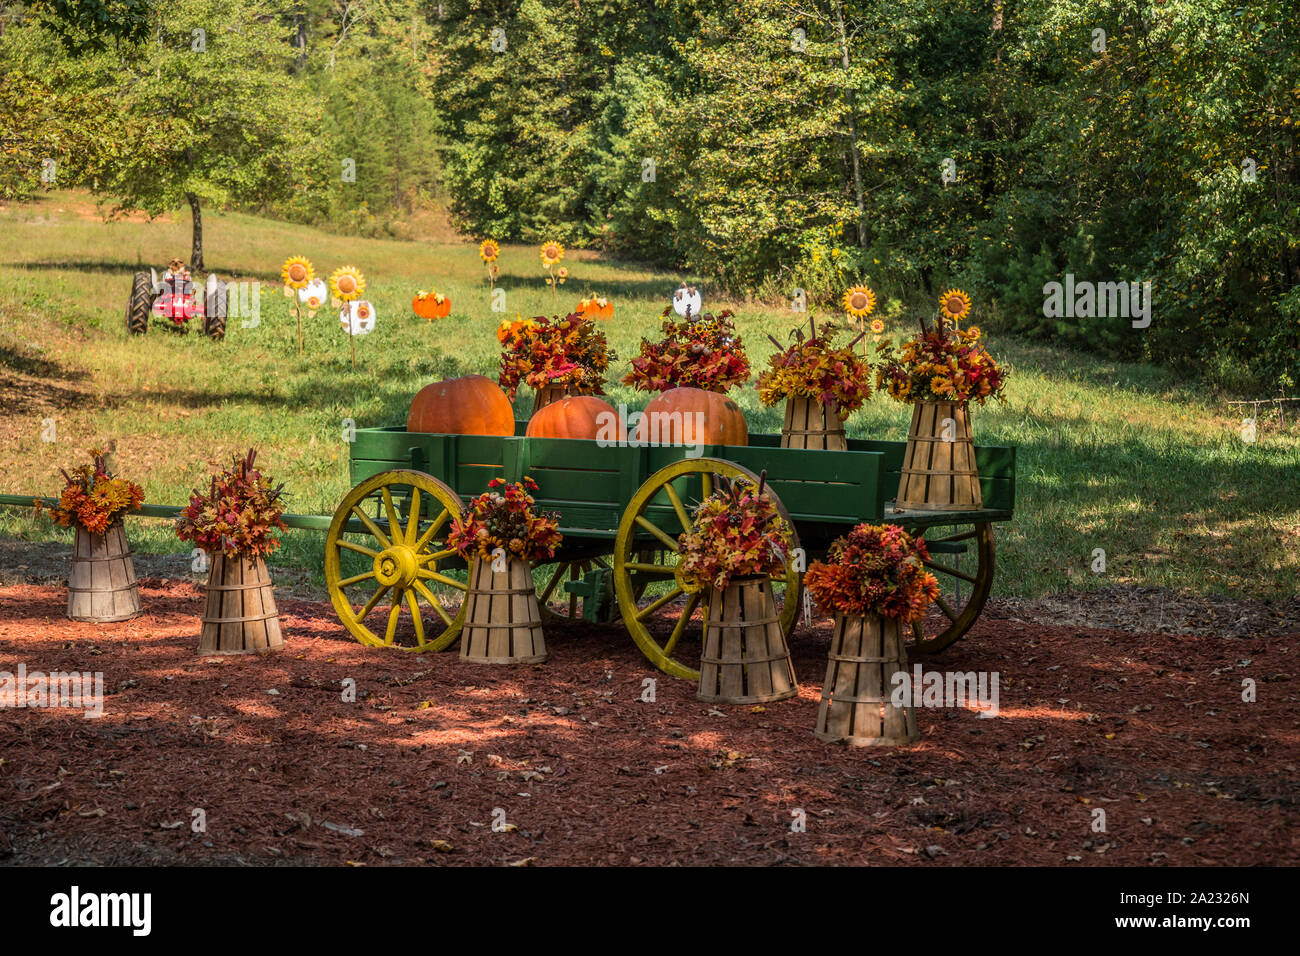 An Autumn Holiday Festive Display Of A Green Wooden Wagon With Pumpkins And Fall Flowers On Baskets In A Farm Field On A Sunny Day Stock Photo Alamy